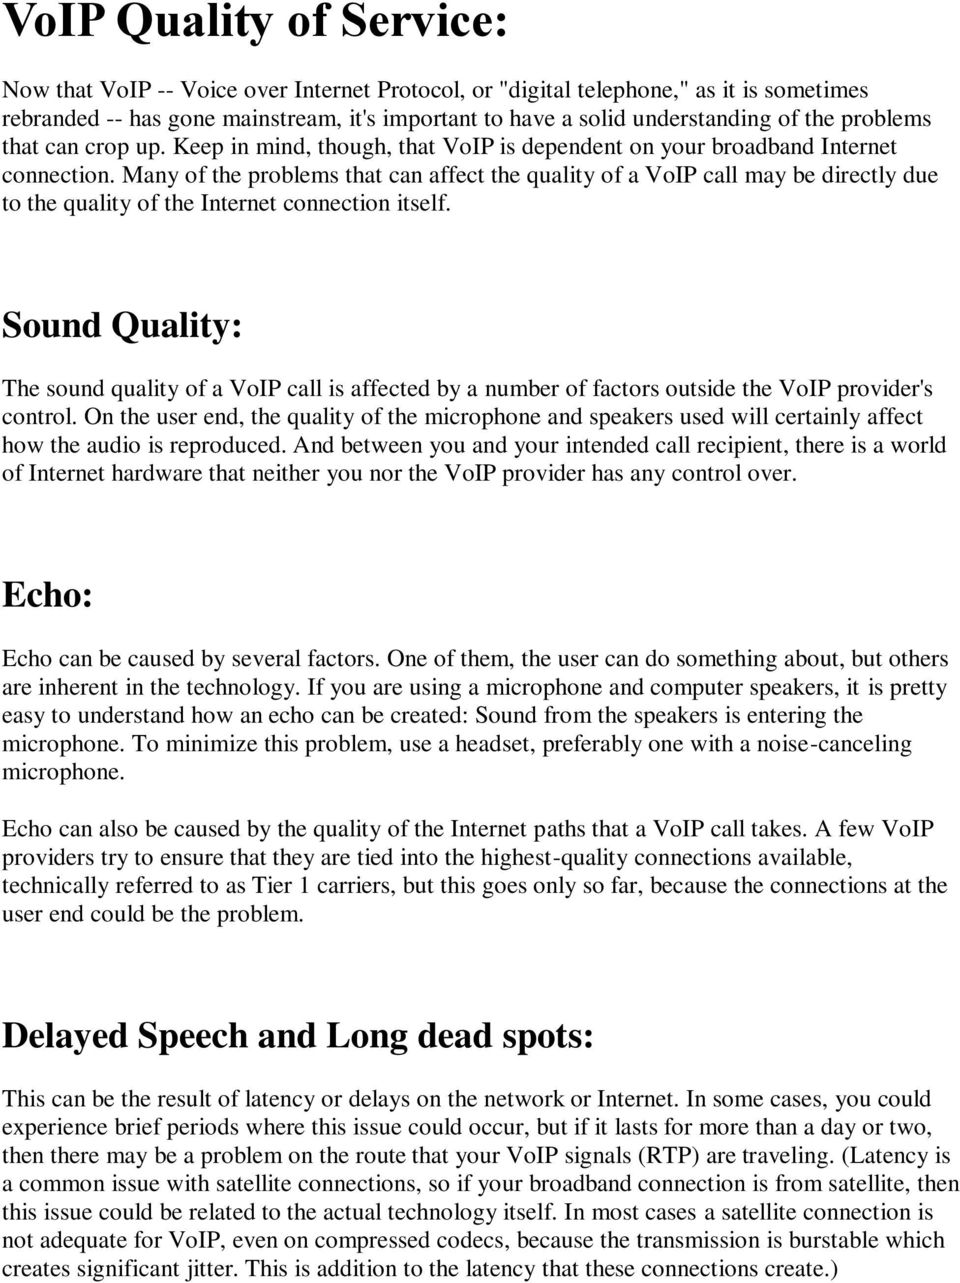 VoIP Quality of Service: - PDF